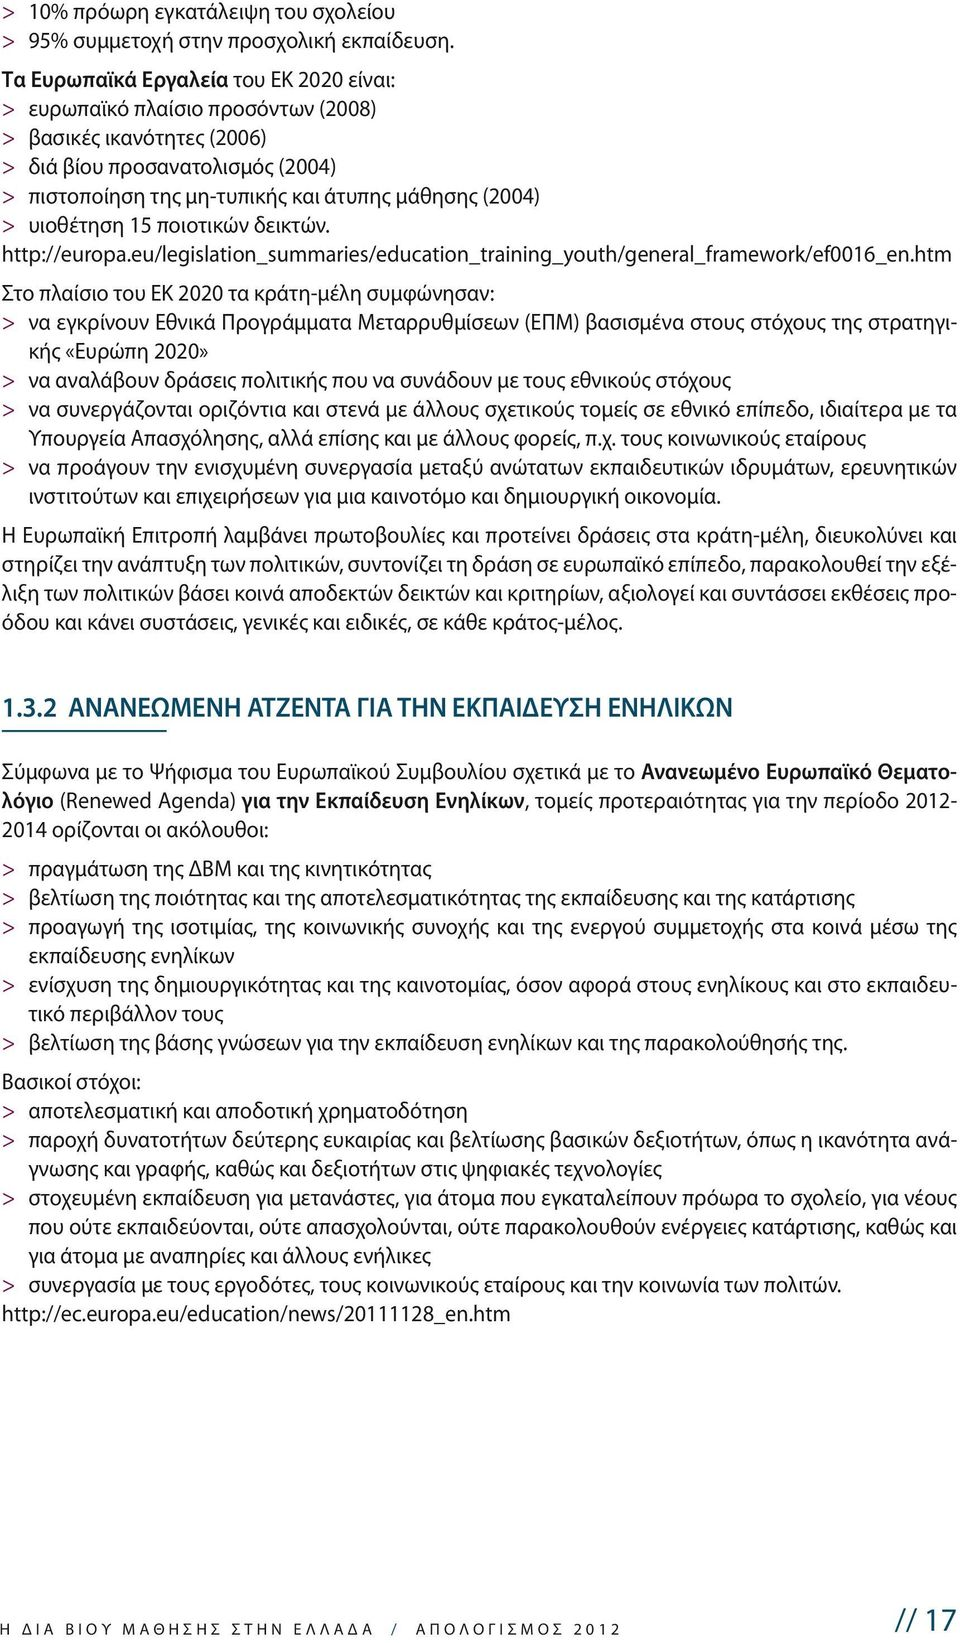 (2004) > > υιοθέτηση 15 ποιοτικών δεικτών. http://europa.eu/legislation_summaries/education_training_youth/general_framework/ef0016_en.